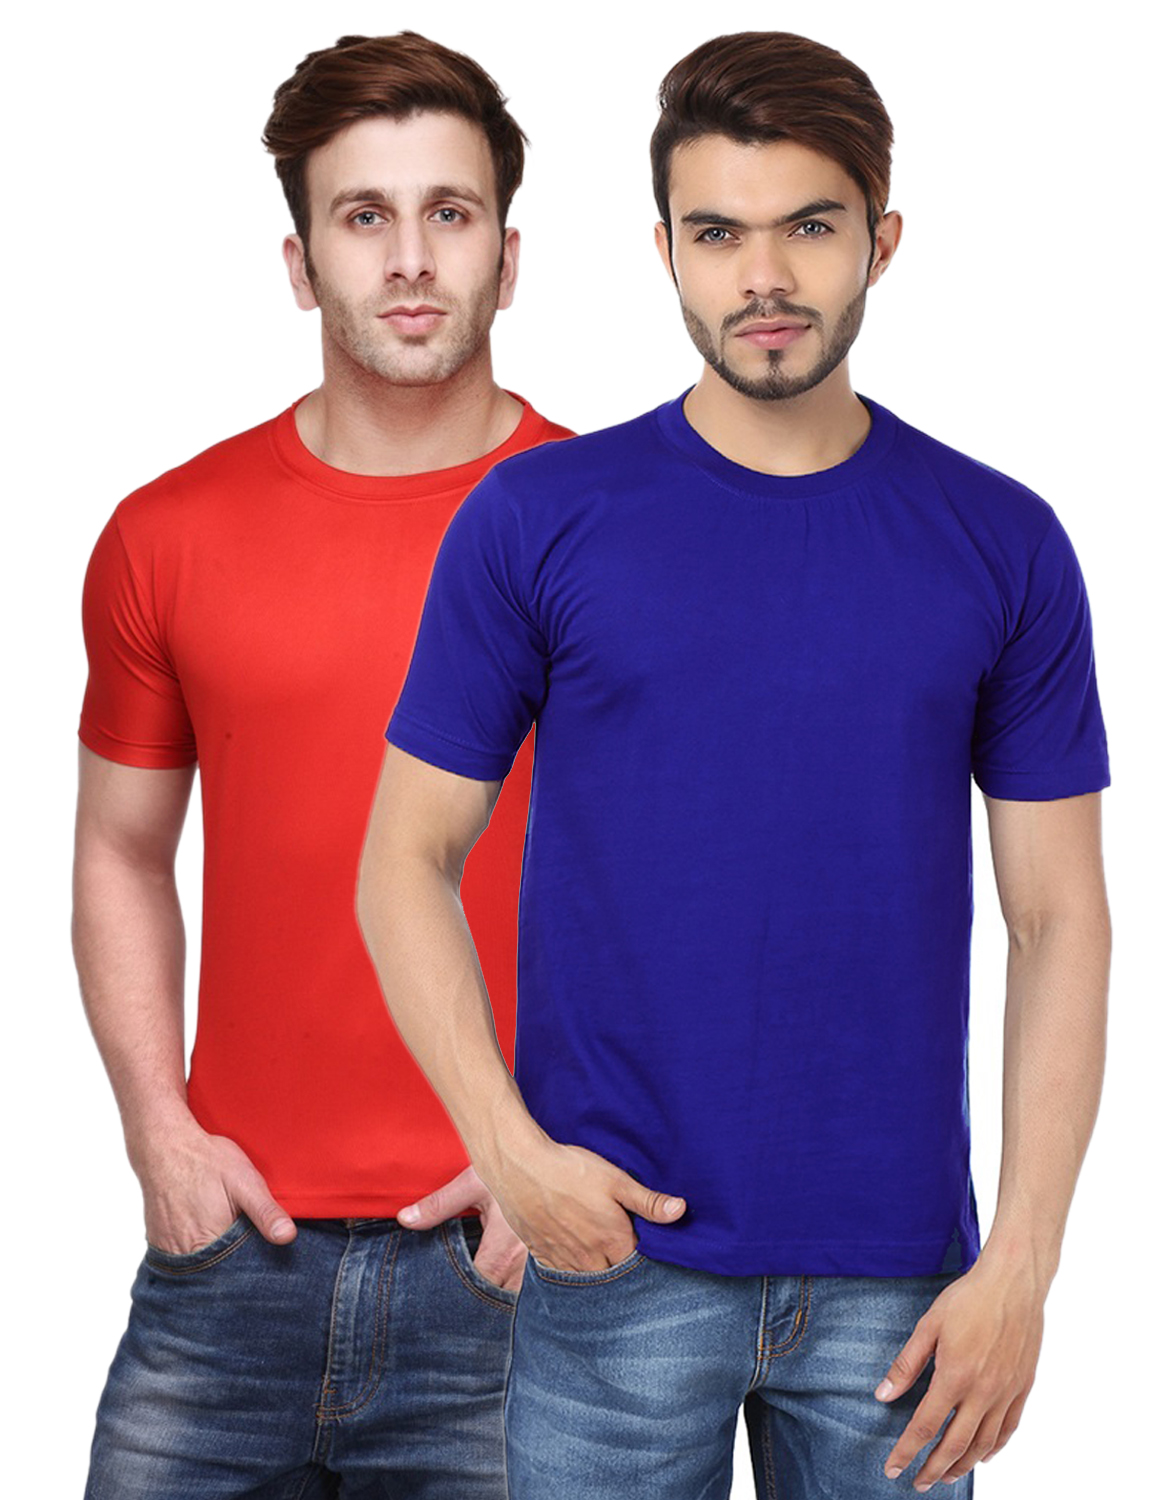 Funky Guys Round Neck Men'S Polyster Blend Dri Fit Tshirts (Pack Of 2)